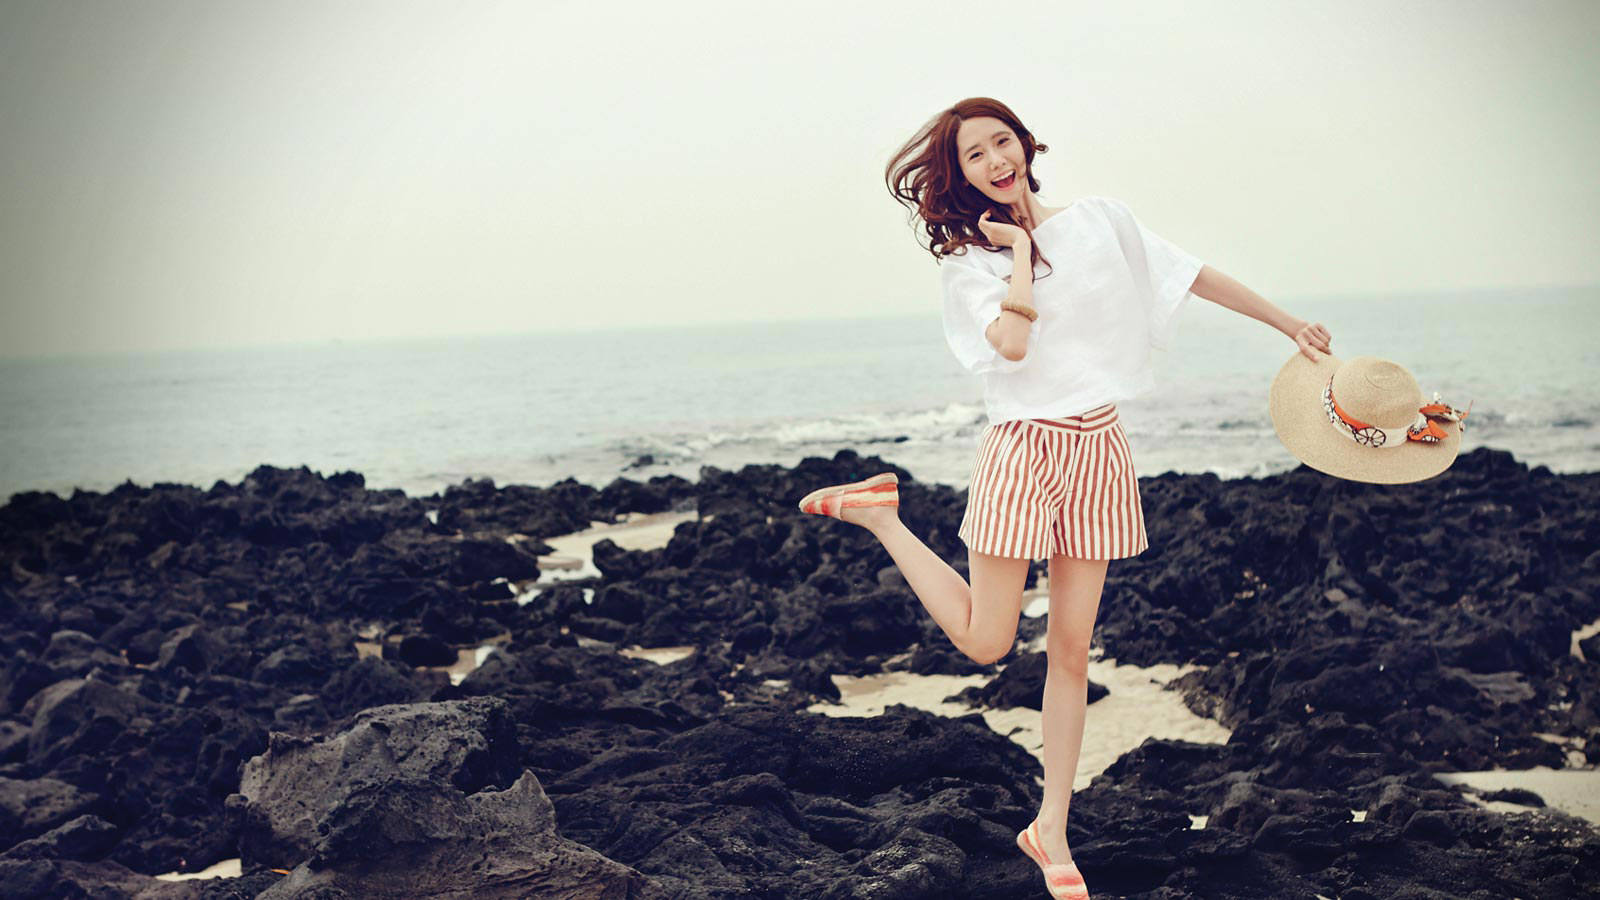 Sunny Girls Generation Wallpaper Yoona Amp Innisfree In Jeju Snsd Pics